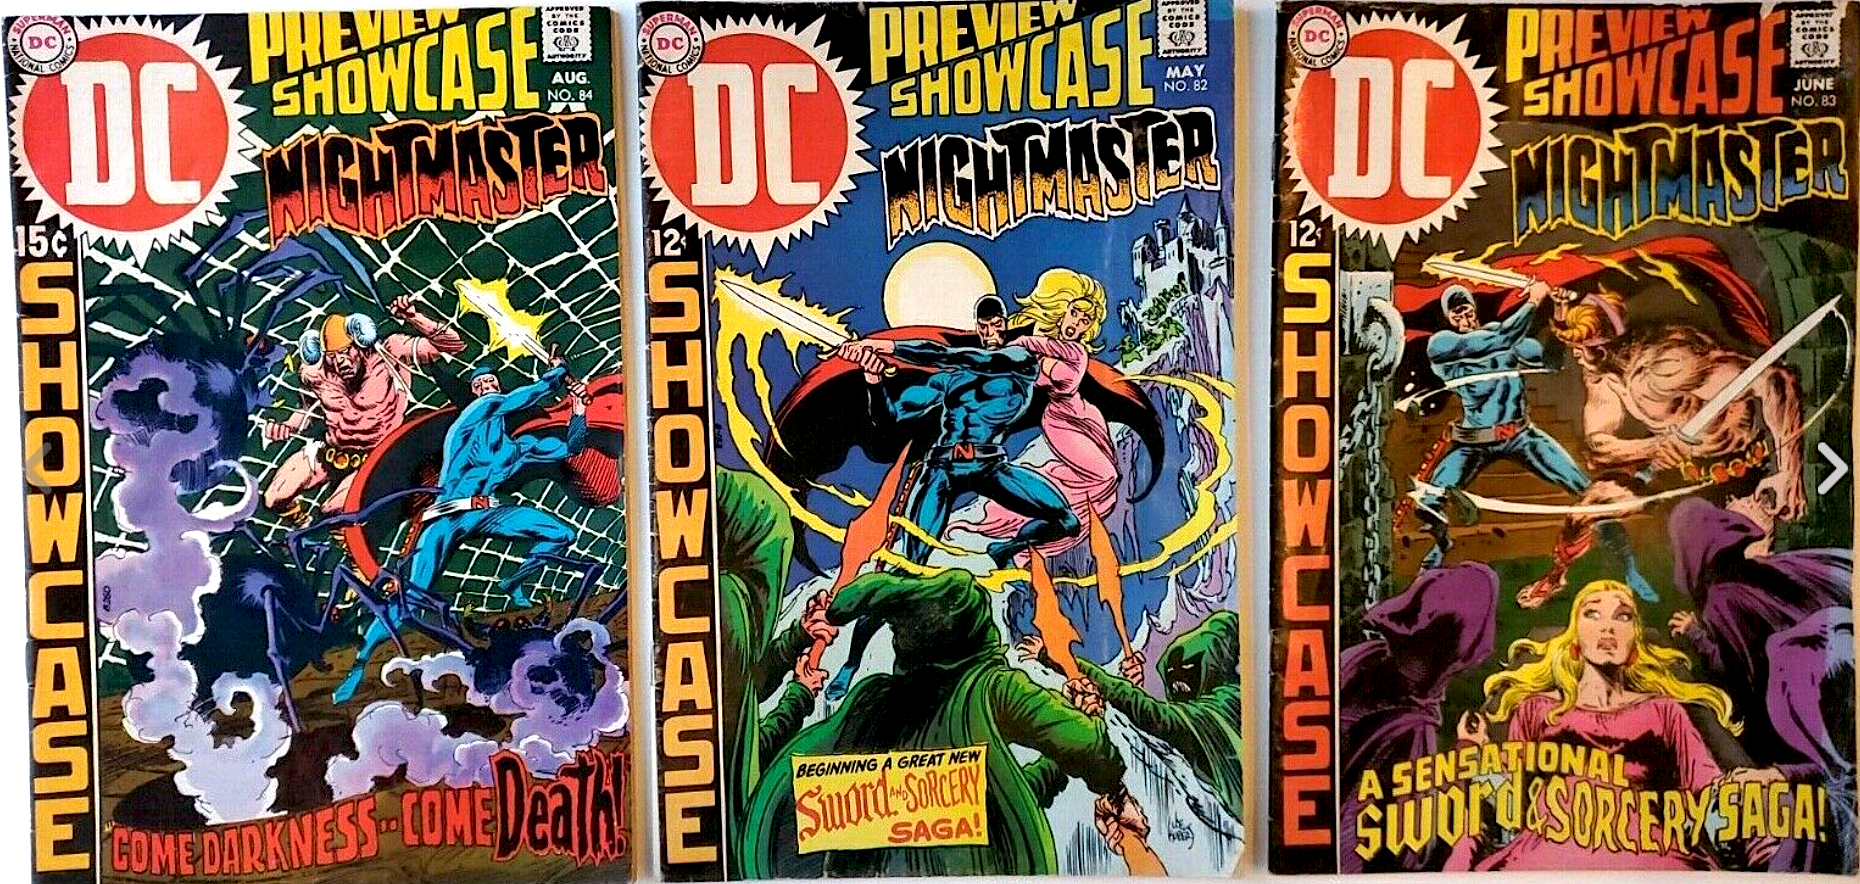 DC COMICS SILVER AGE SHOWCASE NIGHTMASTER No. 82, 83, 84 (3 issues)